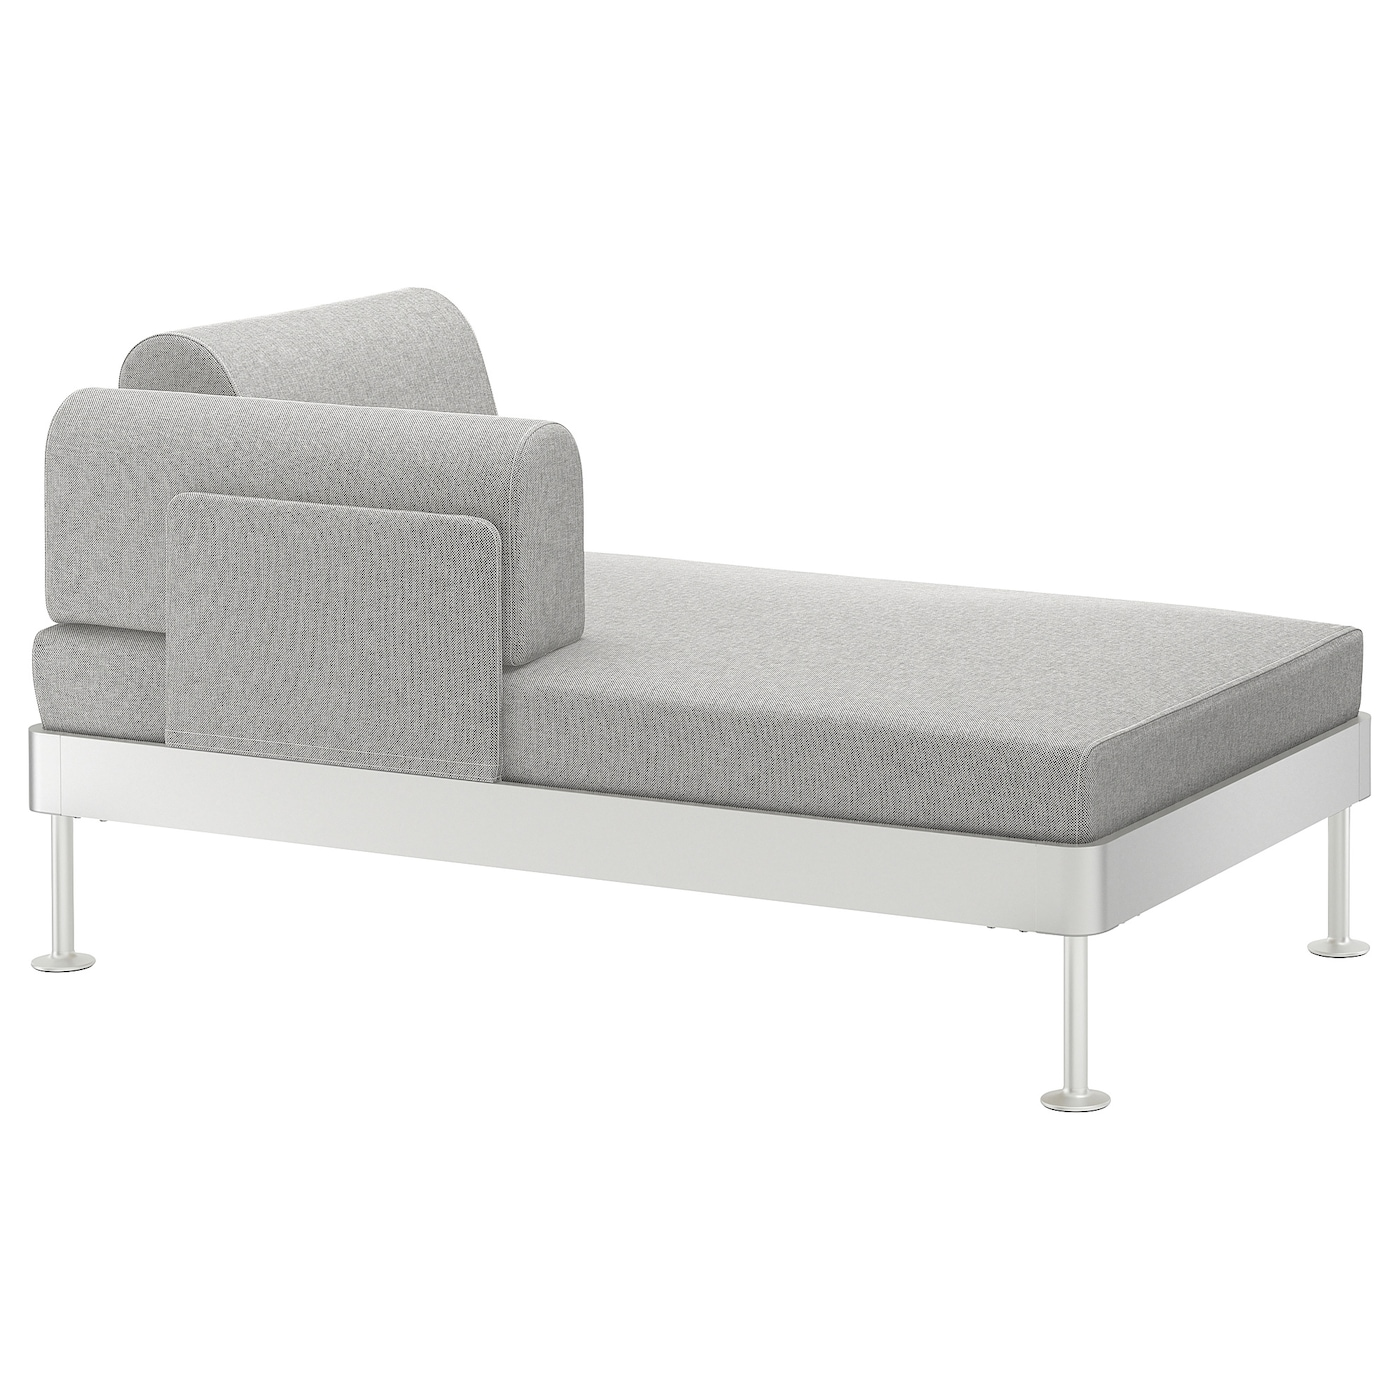 Ikea chaise sofa rp 3 seat sofa with chaise longue for Chaise urban ikea